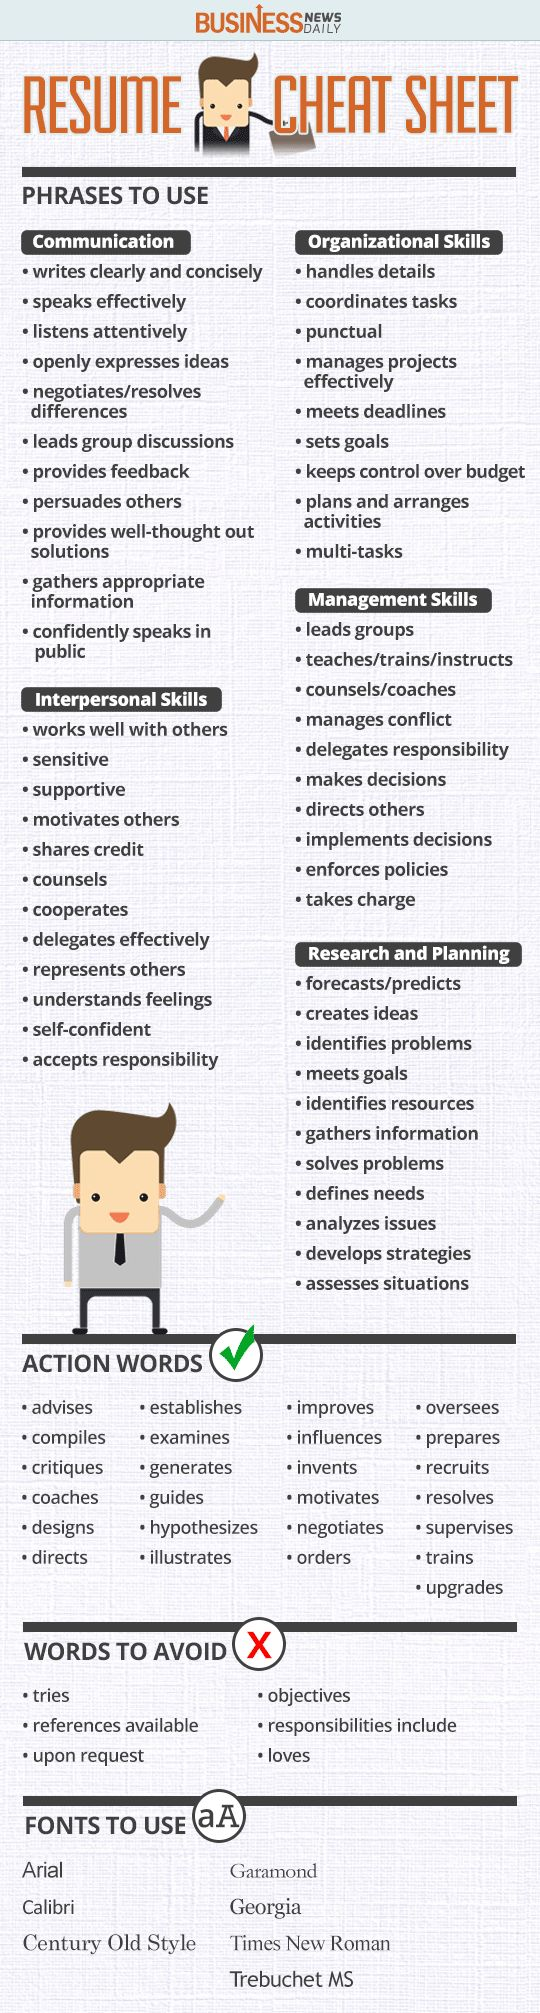 Opposenewapstandardsus  Personable  Ideas About Resume On Pinterest  Cv Format Resume Cv And  With Gorgeous Resume Cheat Sheet Infographic Andrews Almost Done With A Complete Unit On Employment Which With Beauteous Special Skills For A Resume Also Resume With No Education In Addition Resume Tracking Software And Clerical Resume Templates As Well As High School Grad Resume Additionally Resume For Recent High School Graduate From Pinterestcom With Opposenewapstandardsus  Gorgeous  Ideas About Resume On Pinterest  Cv Format Resume Cv And  With Beauteous Resume Cheat Sheet Infographic Andrews Almost Done With A Complete Unit On Employment Which And Personable Special Skills For A Resume Also Resume With No Education In Addition Resume Tracking Software From Pinterestcom